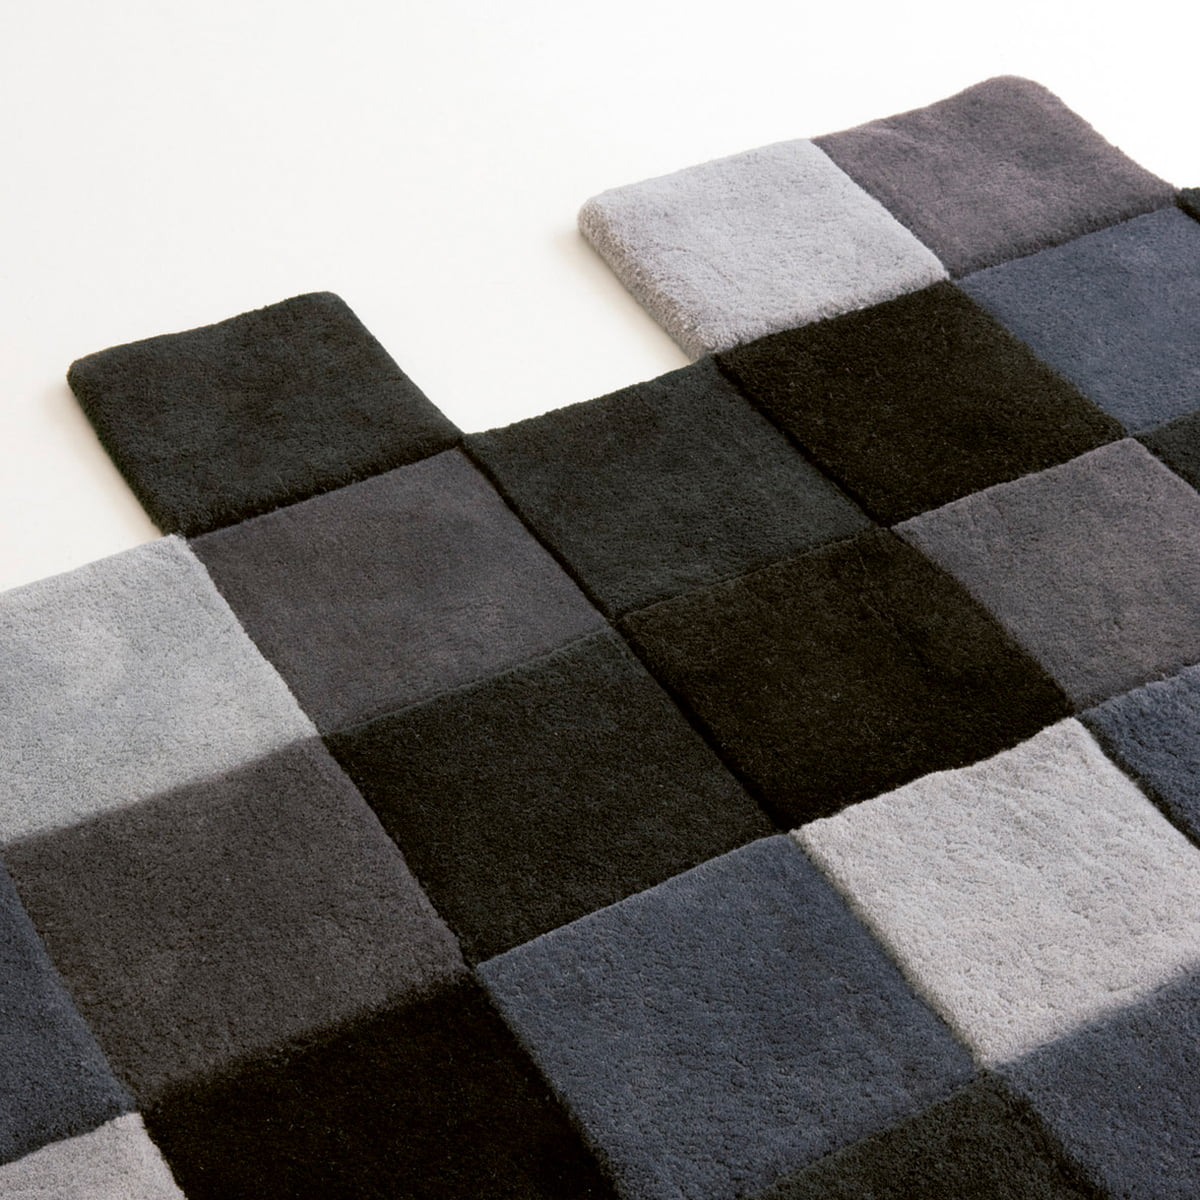 Do Lo Rez Rug With Square Boxes